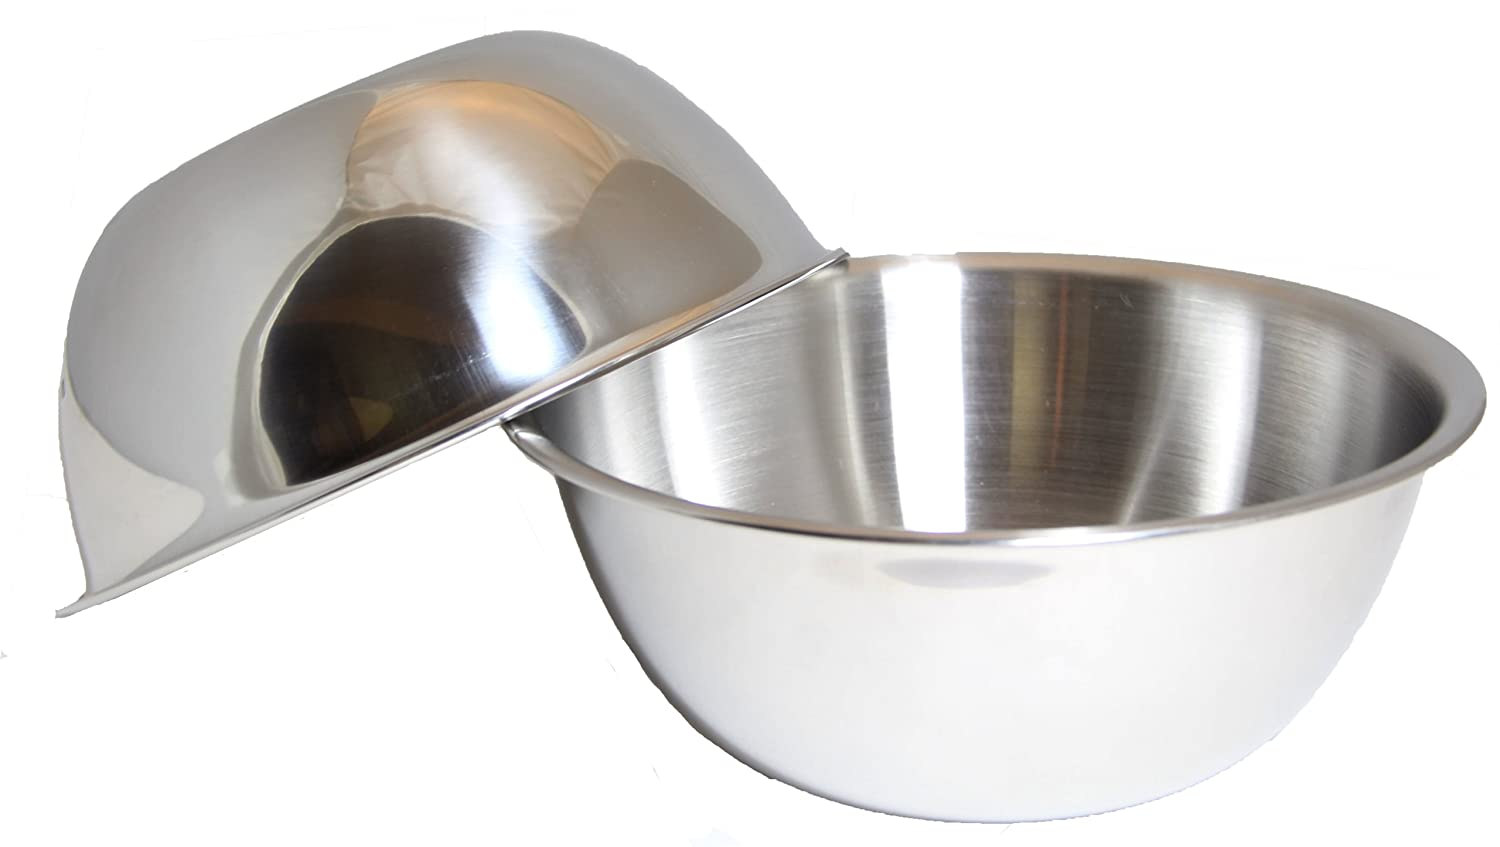 SET OF 2, 5-Quart Heavy-Duty Deep Stainless Steel Flat Base Mixing Bowl